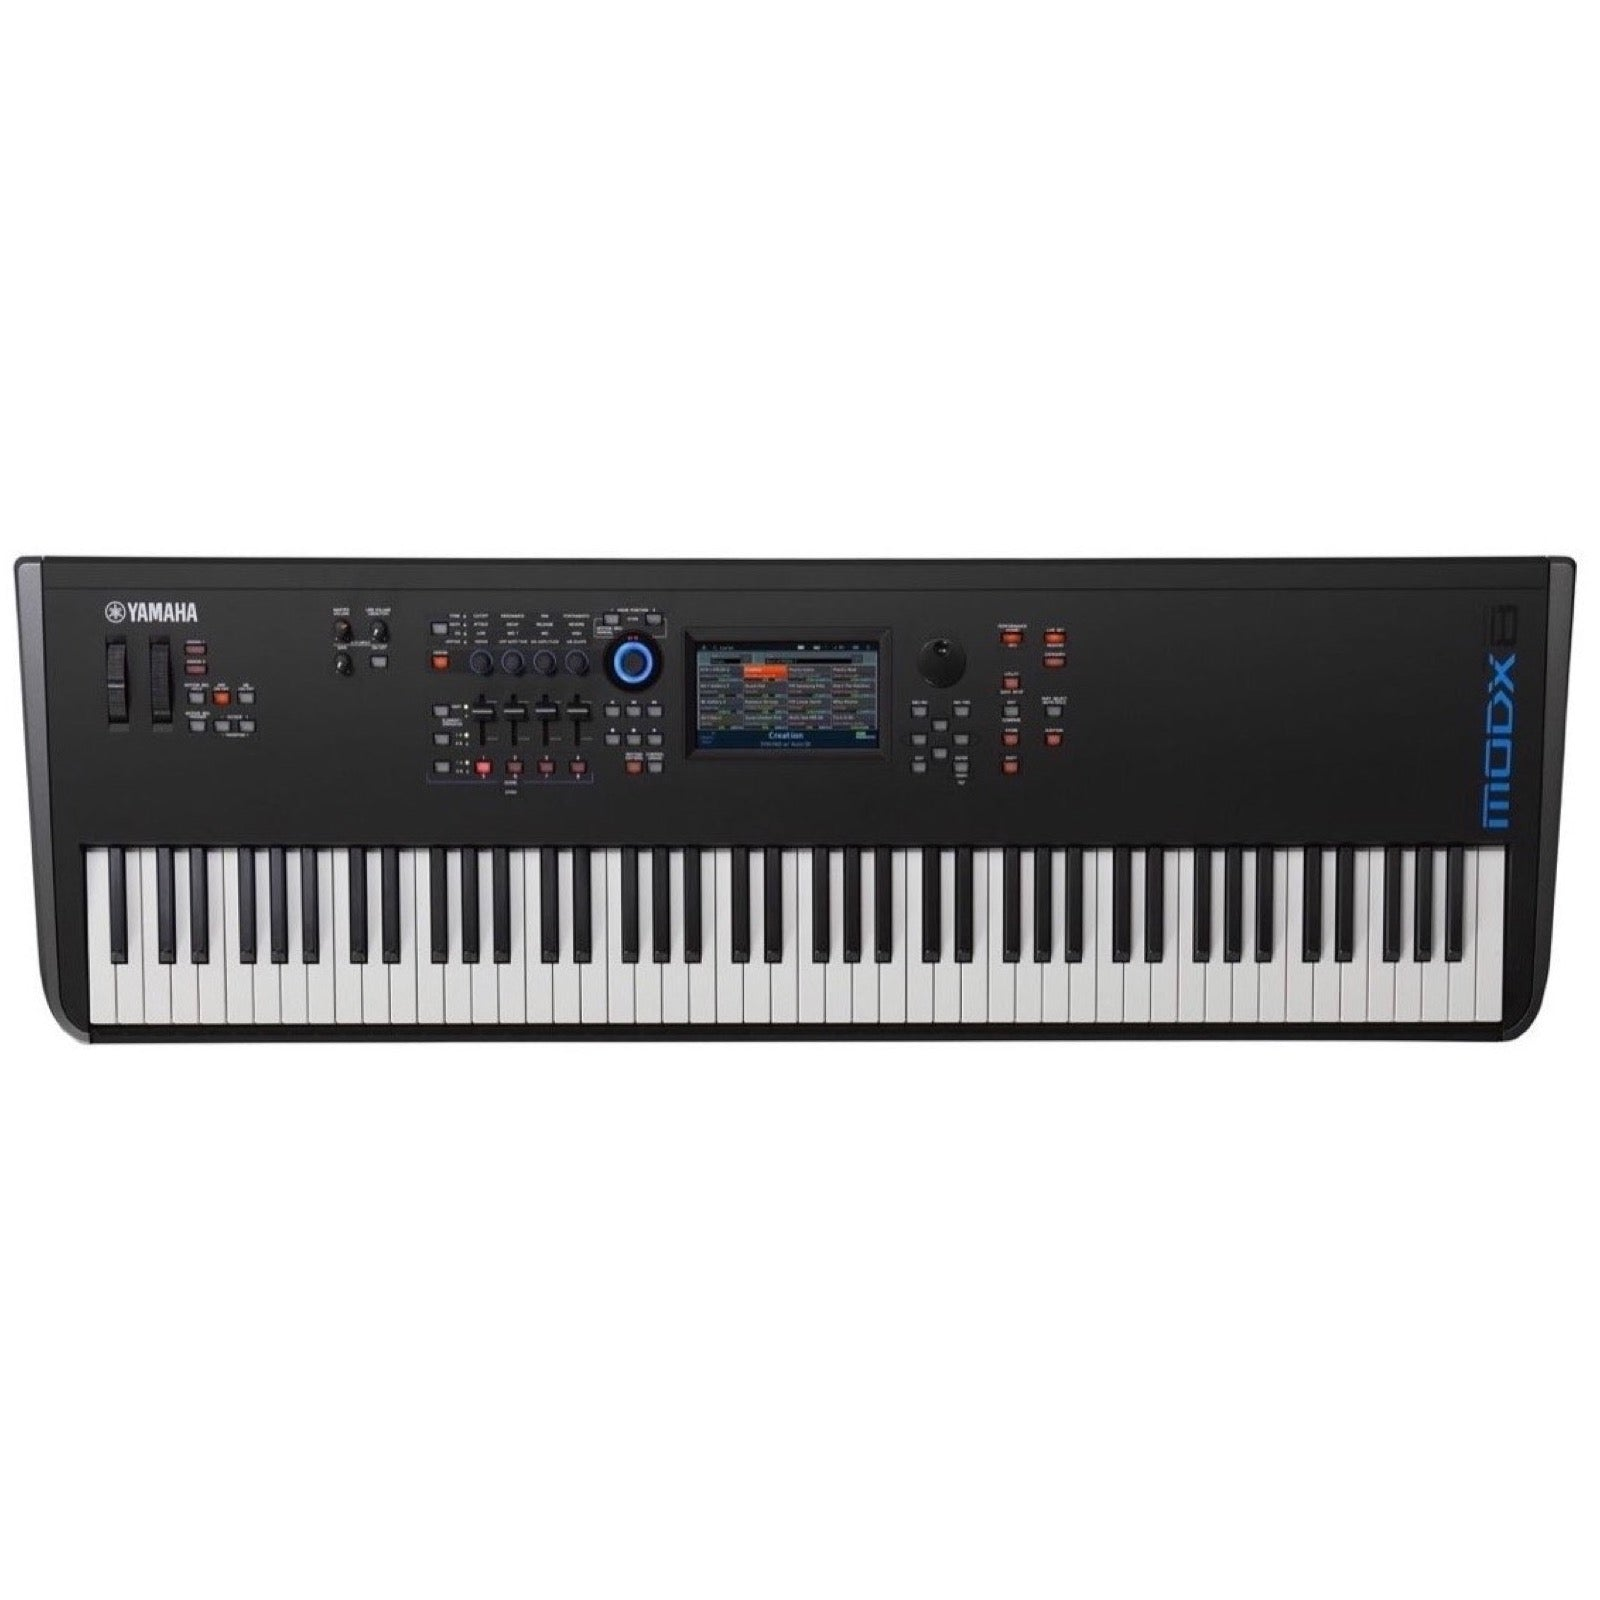 Yamaha MODX8 Keyboard Synthesizer, 88-Key